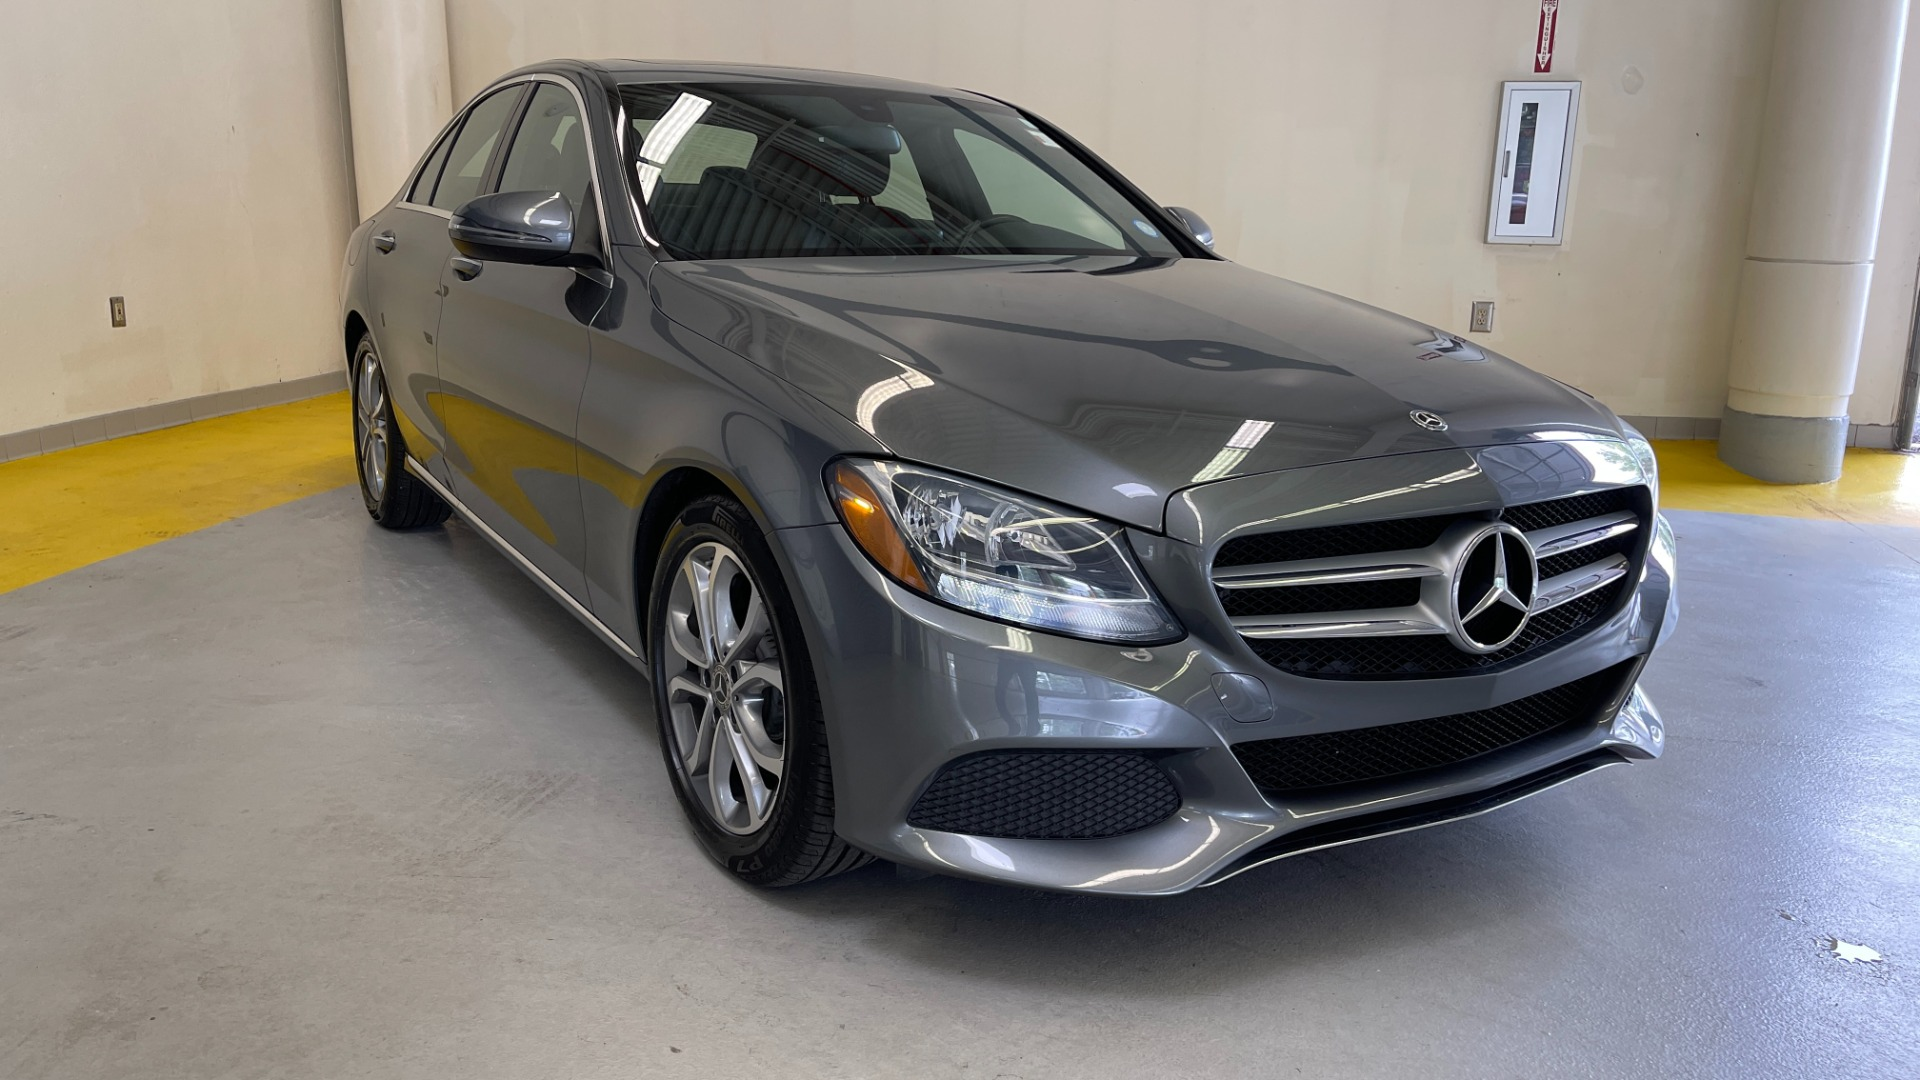 Used 2018 Mercedes-Benz C-CLASS C 300 PREMIUM / SUNROOF / APPLE CARPLAY / HTD STS / REARVIEW for sale $31,795 at Formula Imports in Charlotte NC 28227 5